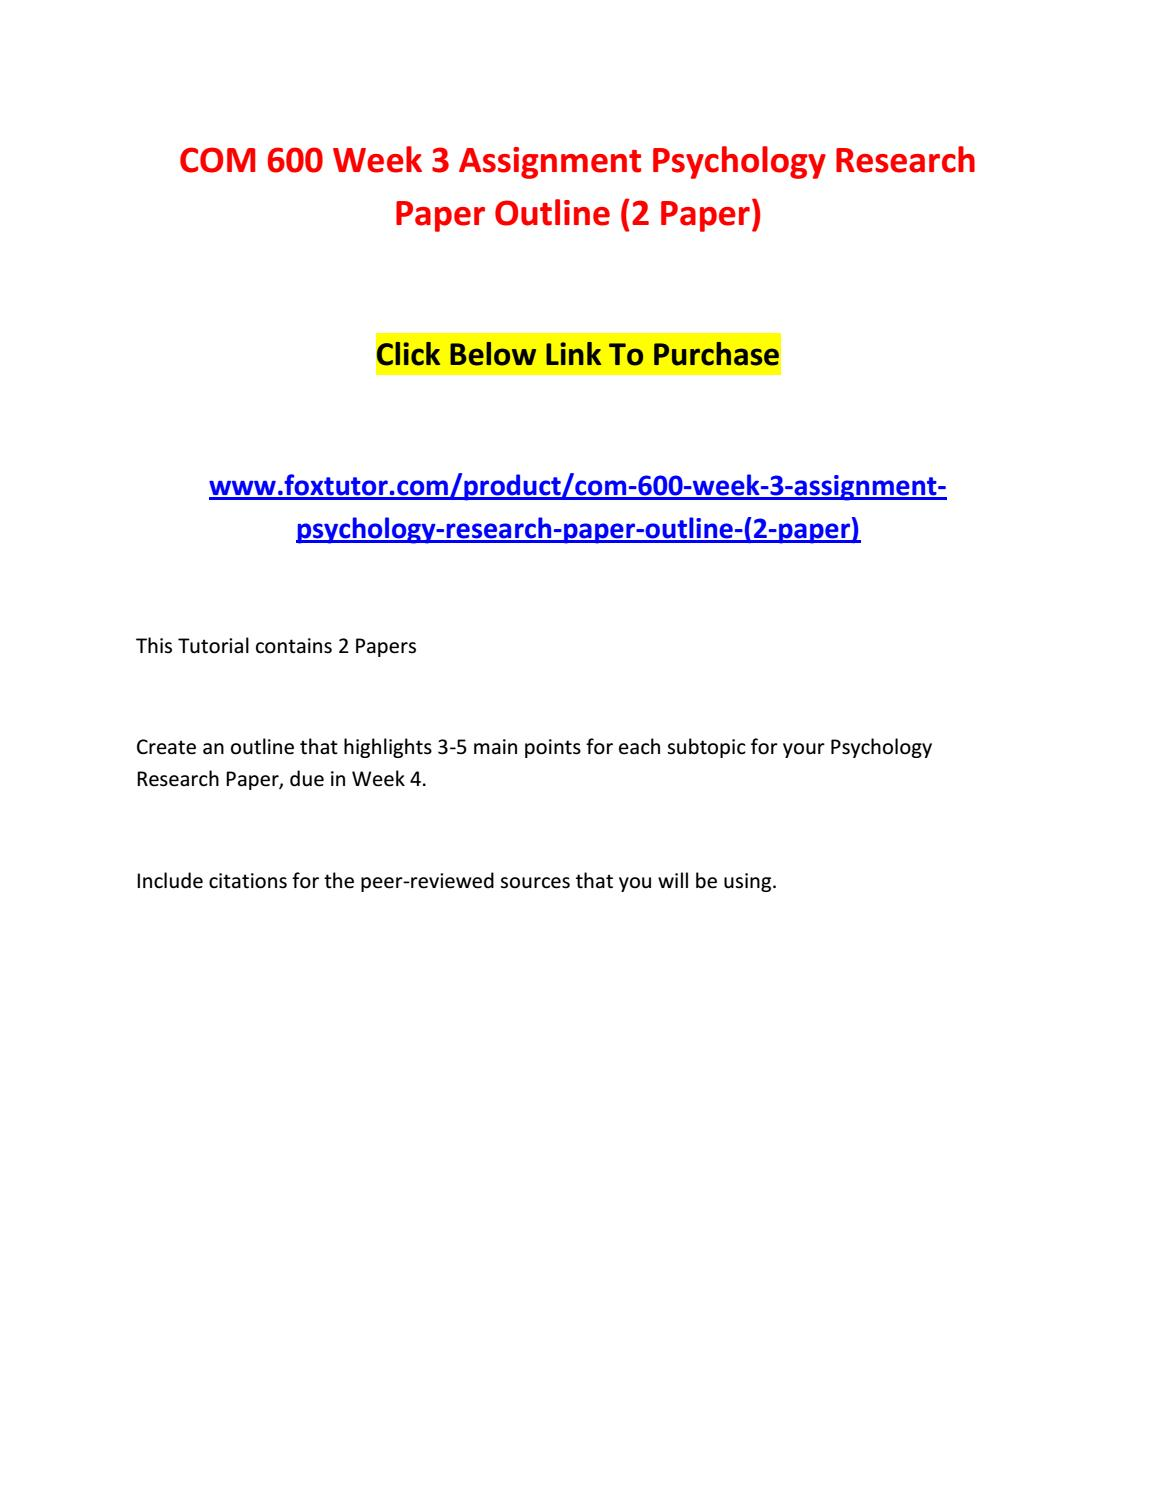 003 Page 1 Psychology Research Paper Outline Com Striking 600 Com/600 Full